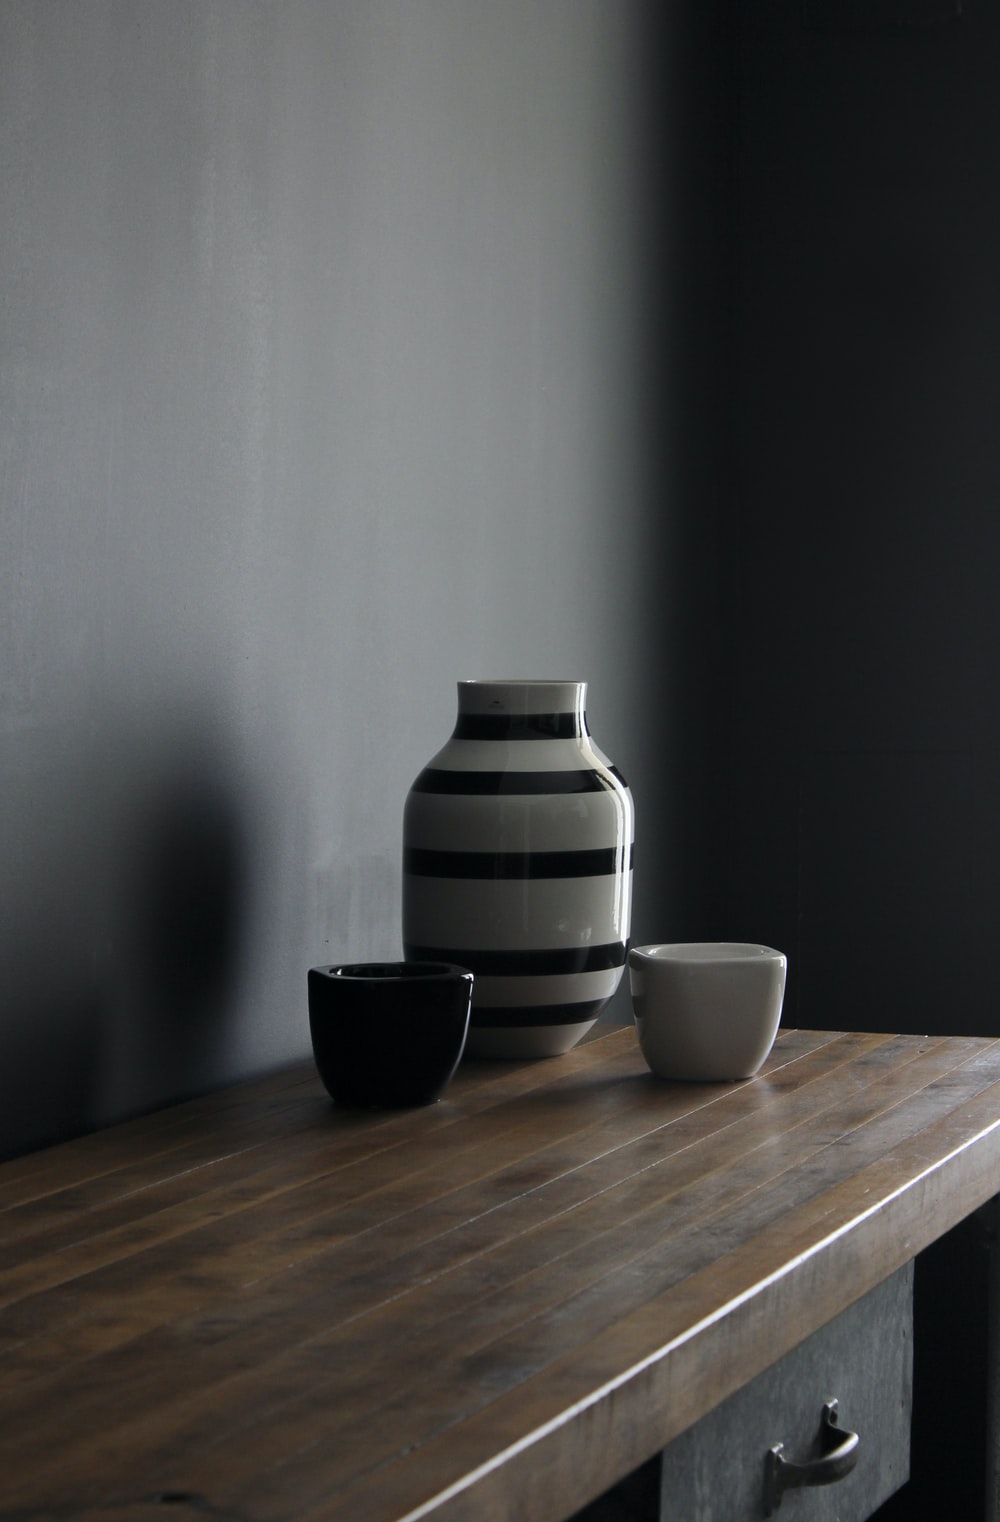 white and black striped ceramic vase on brown wooden table